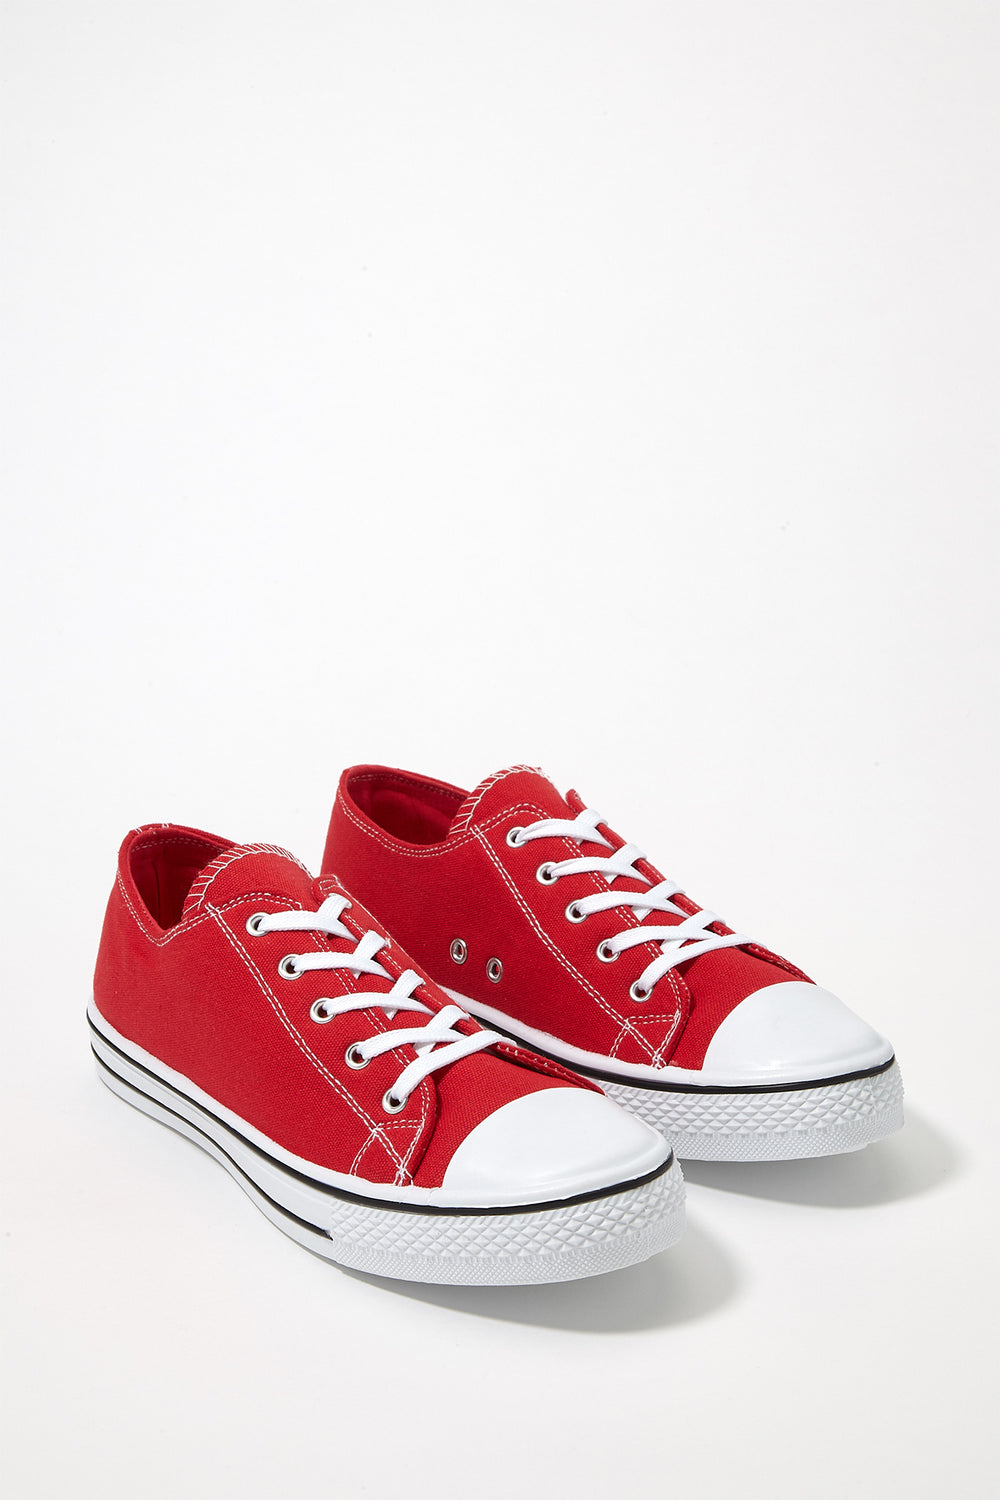 Printed Canvas Lace-Up Sneaker Red